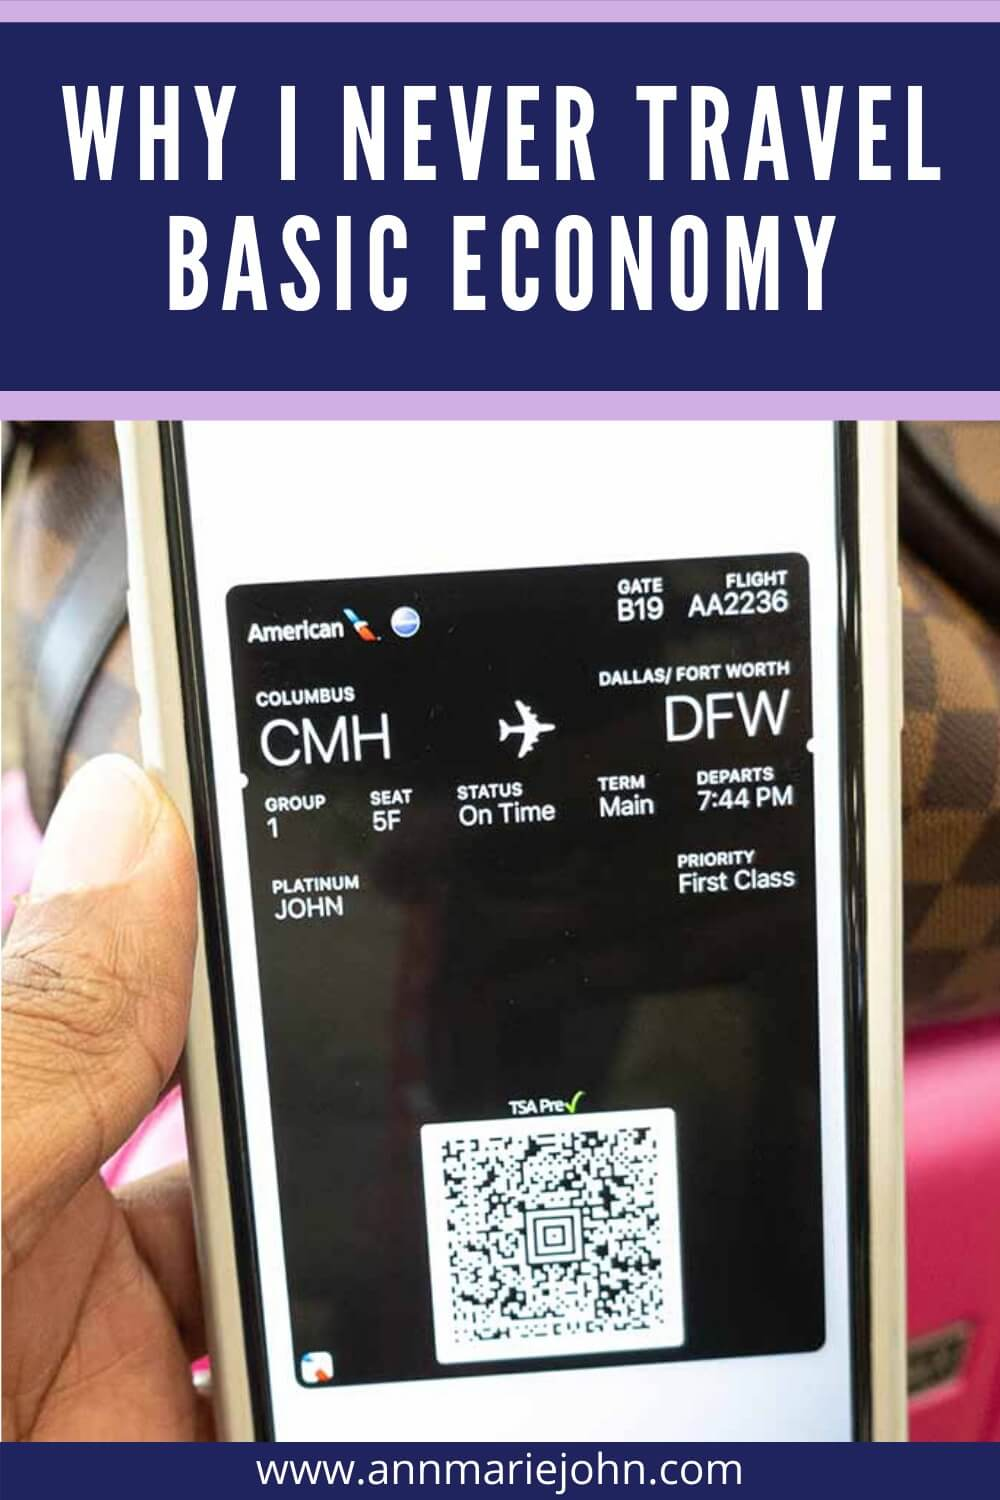 Why I Never Travel Basic Economy